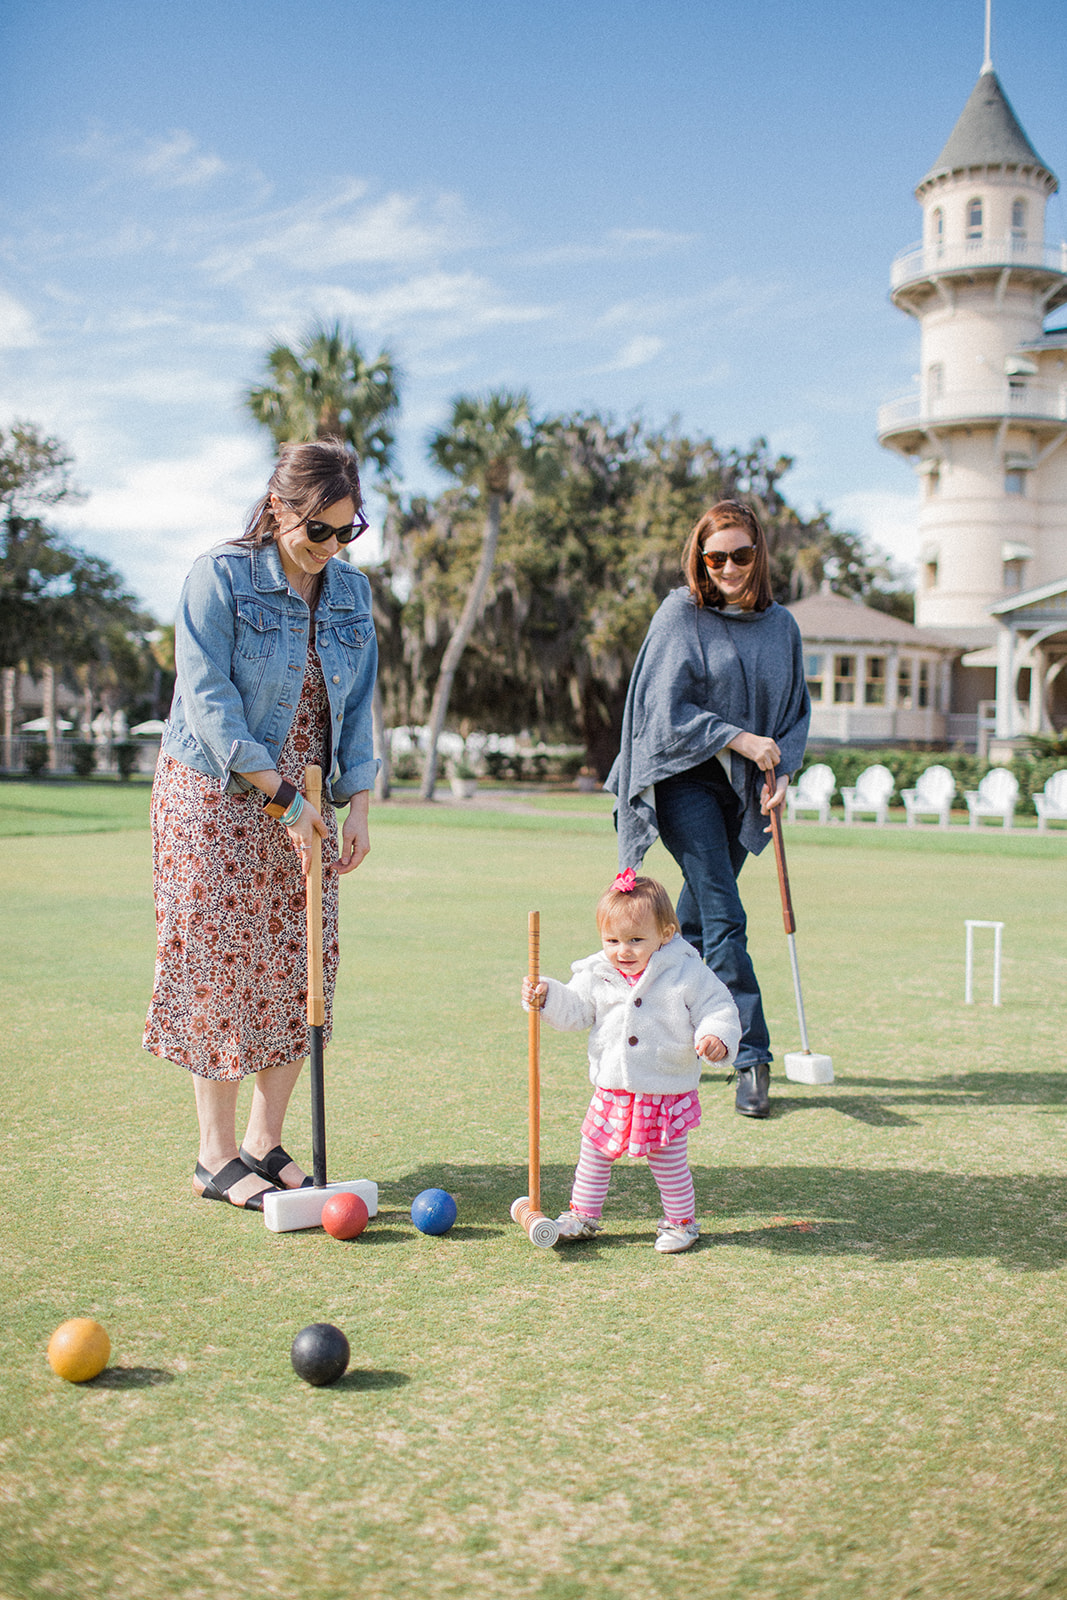 Croquet Lawn by Caitlin Lee